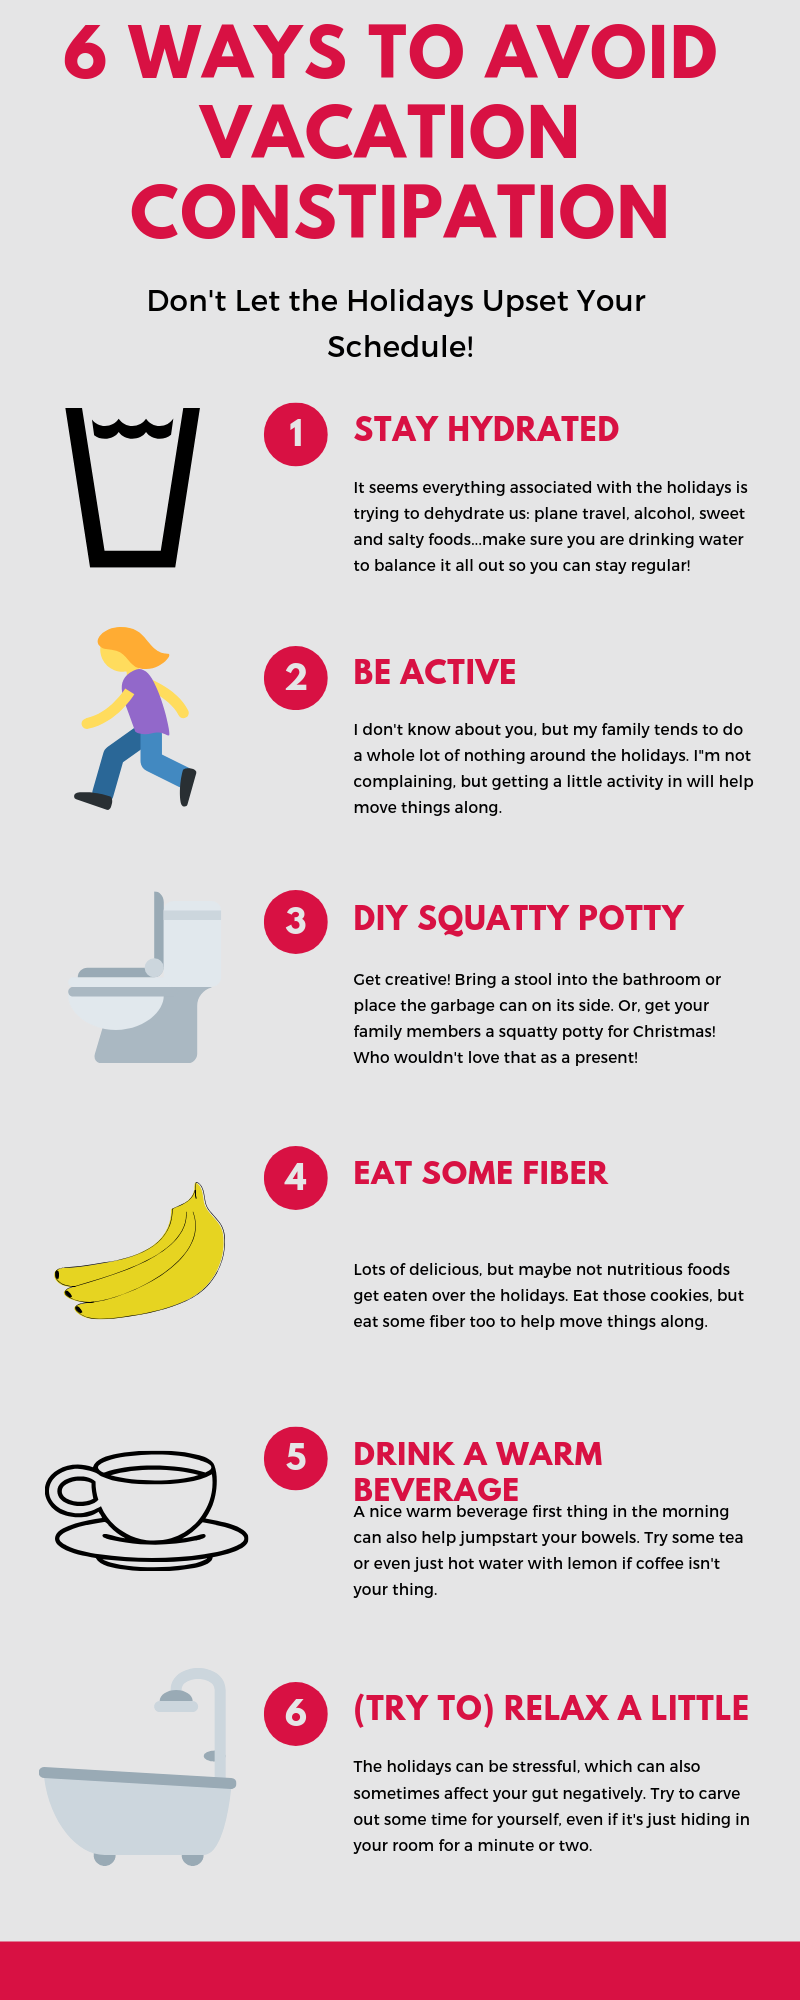 5 Ways to avoid vacation constipation.png